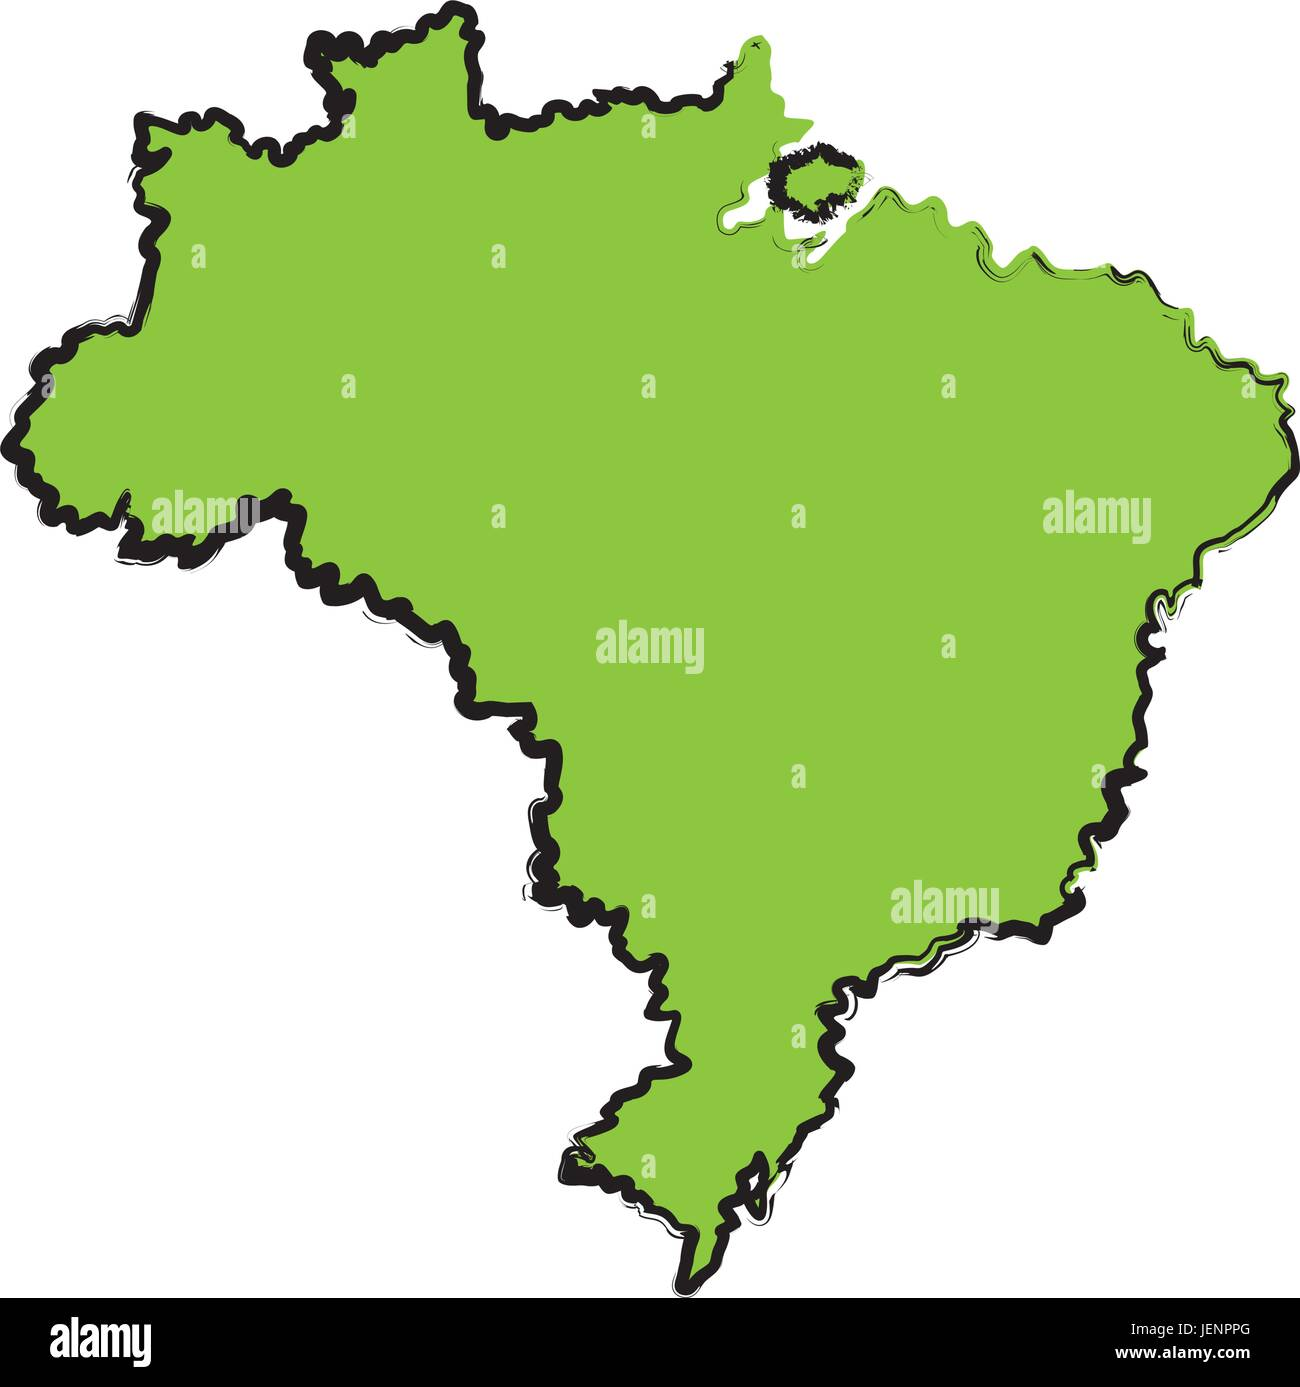 map of brazil cartography geography tourism travel - Stock Image